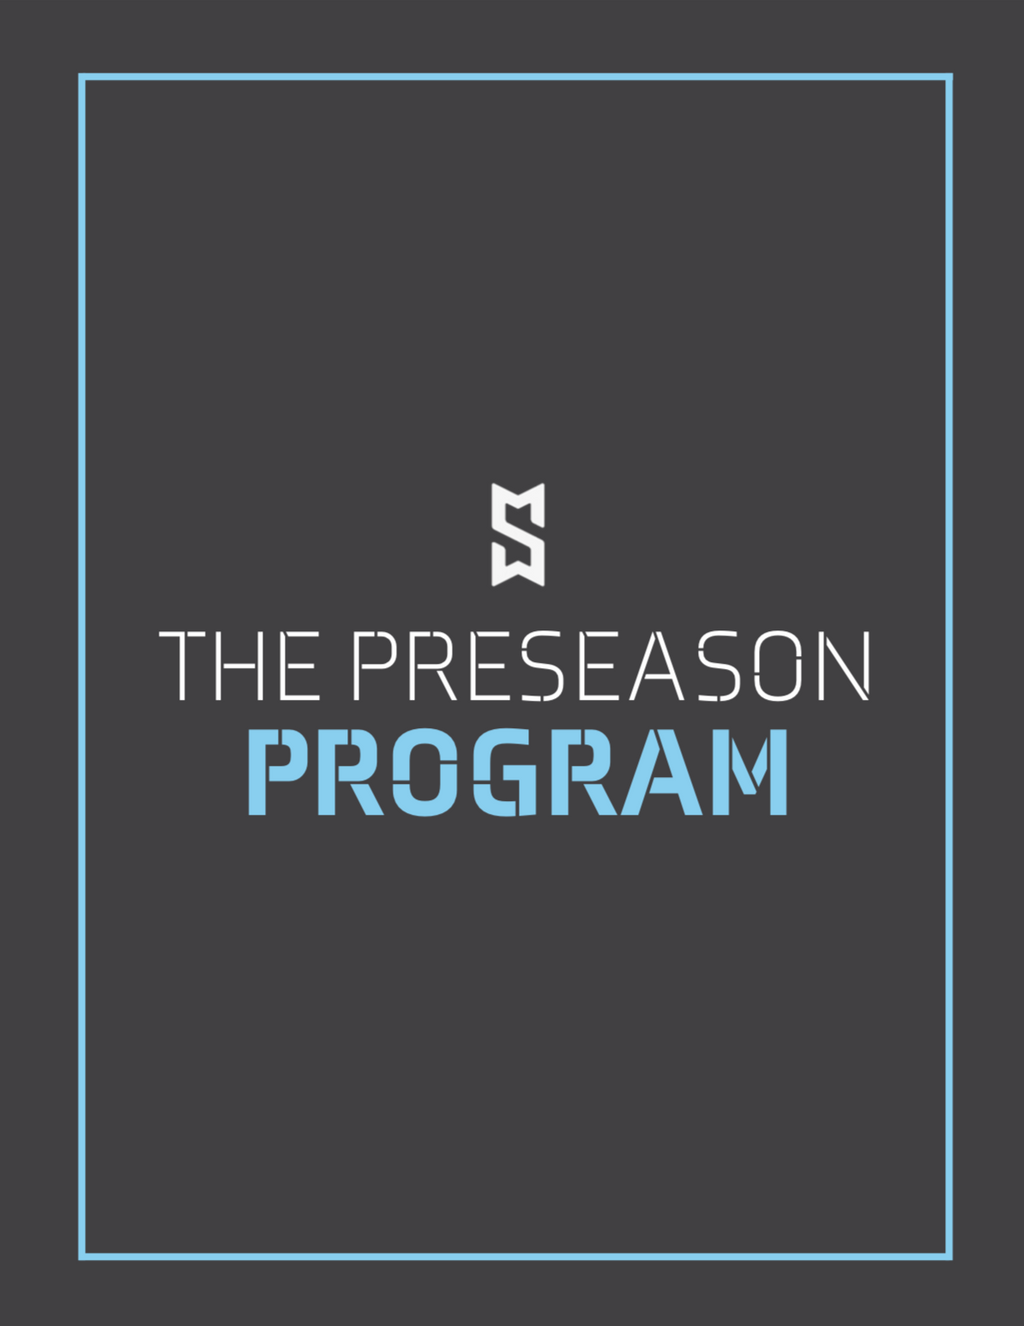 The Preseason Program